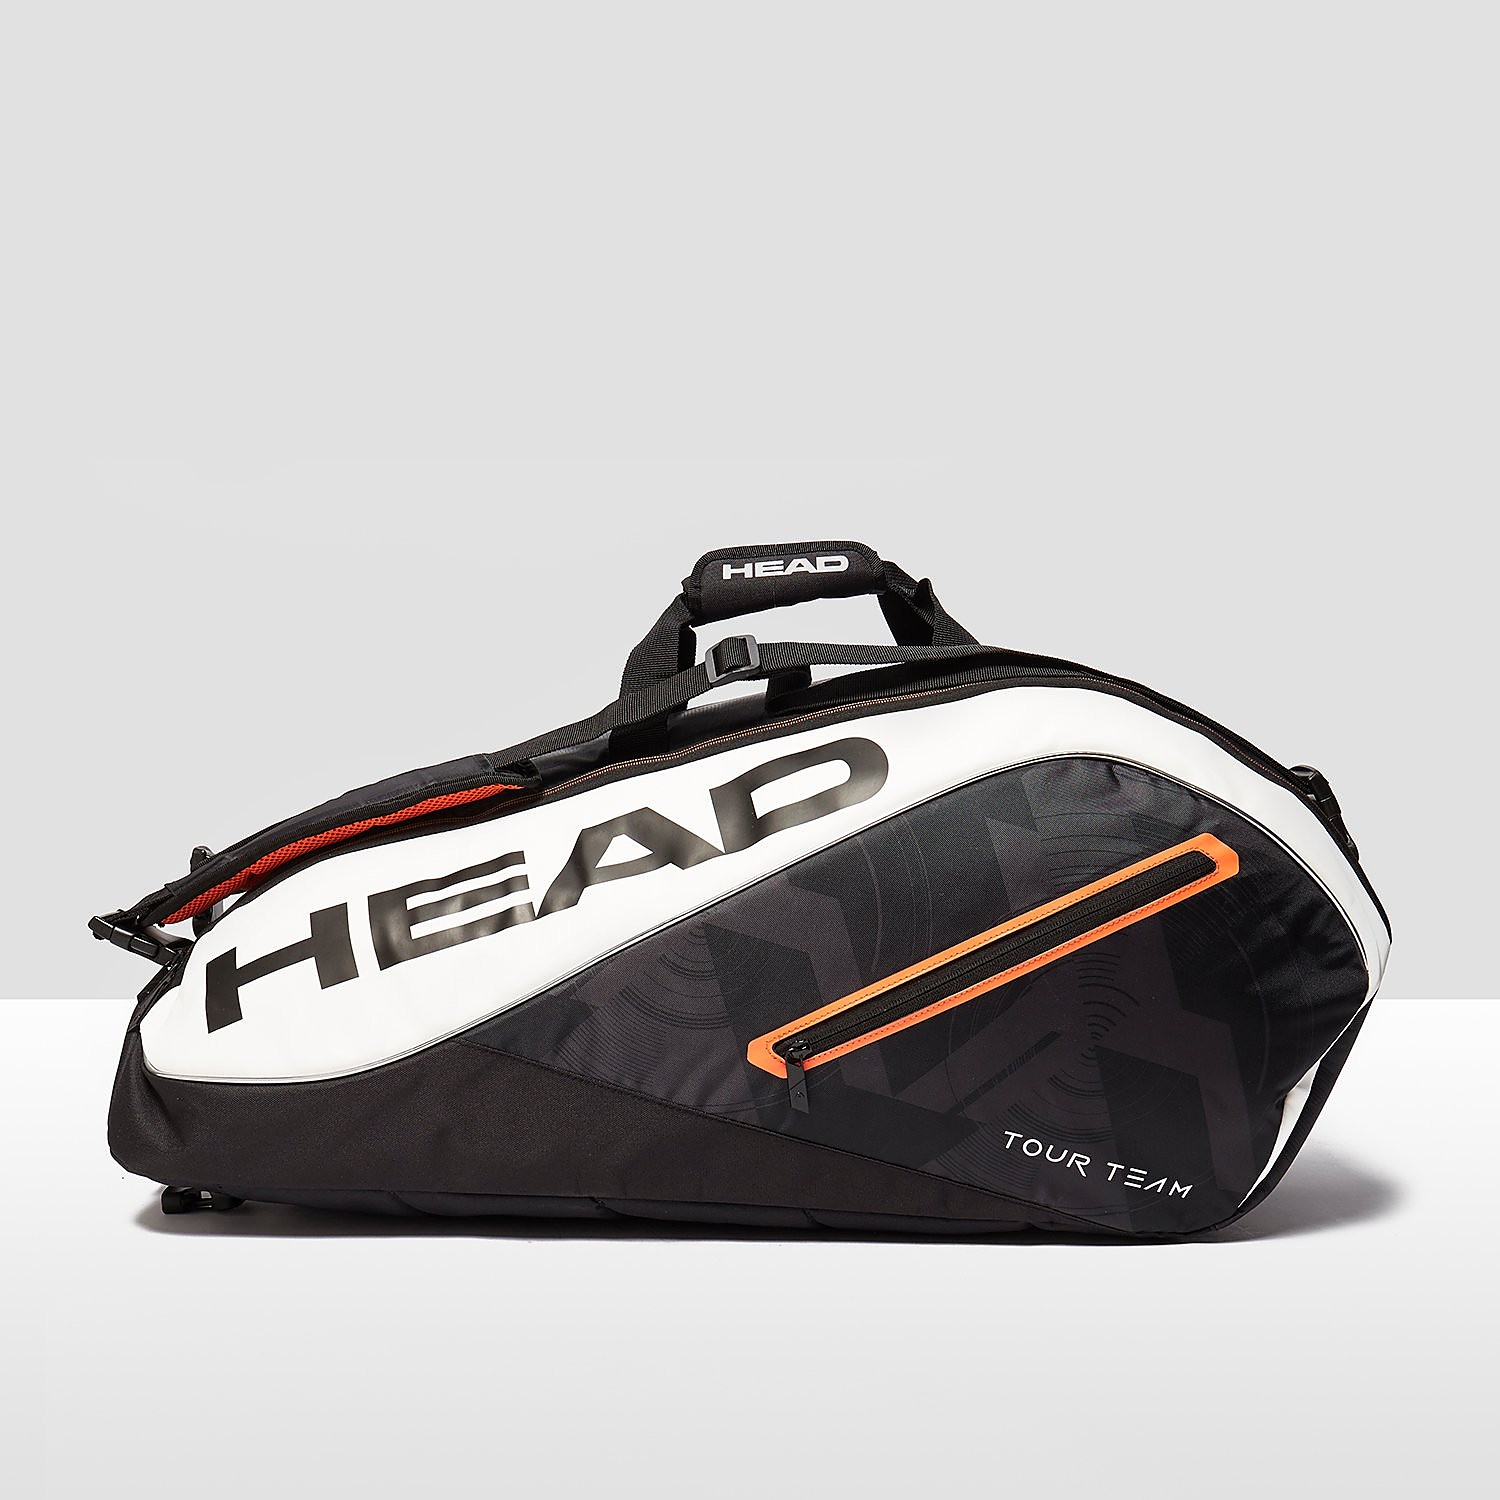 Head Tour Team Supercombi Tennis Holdall